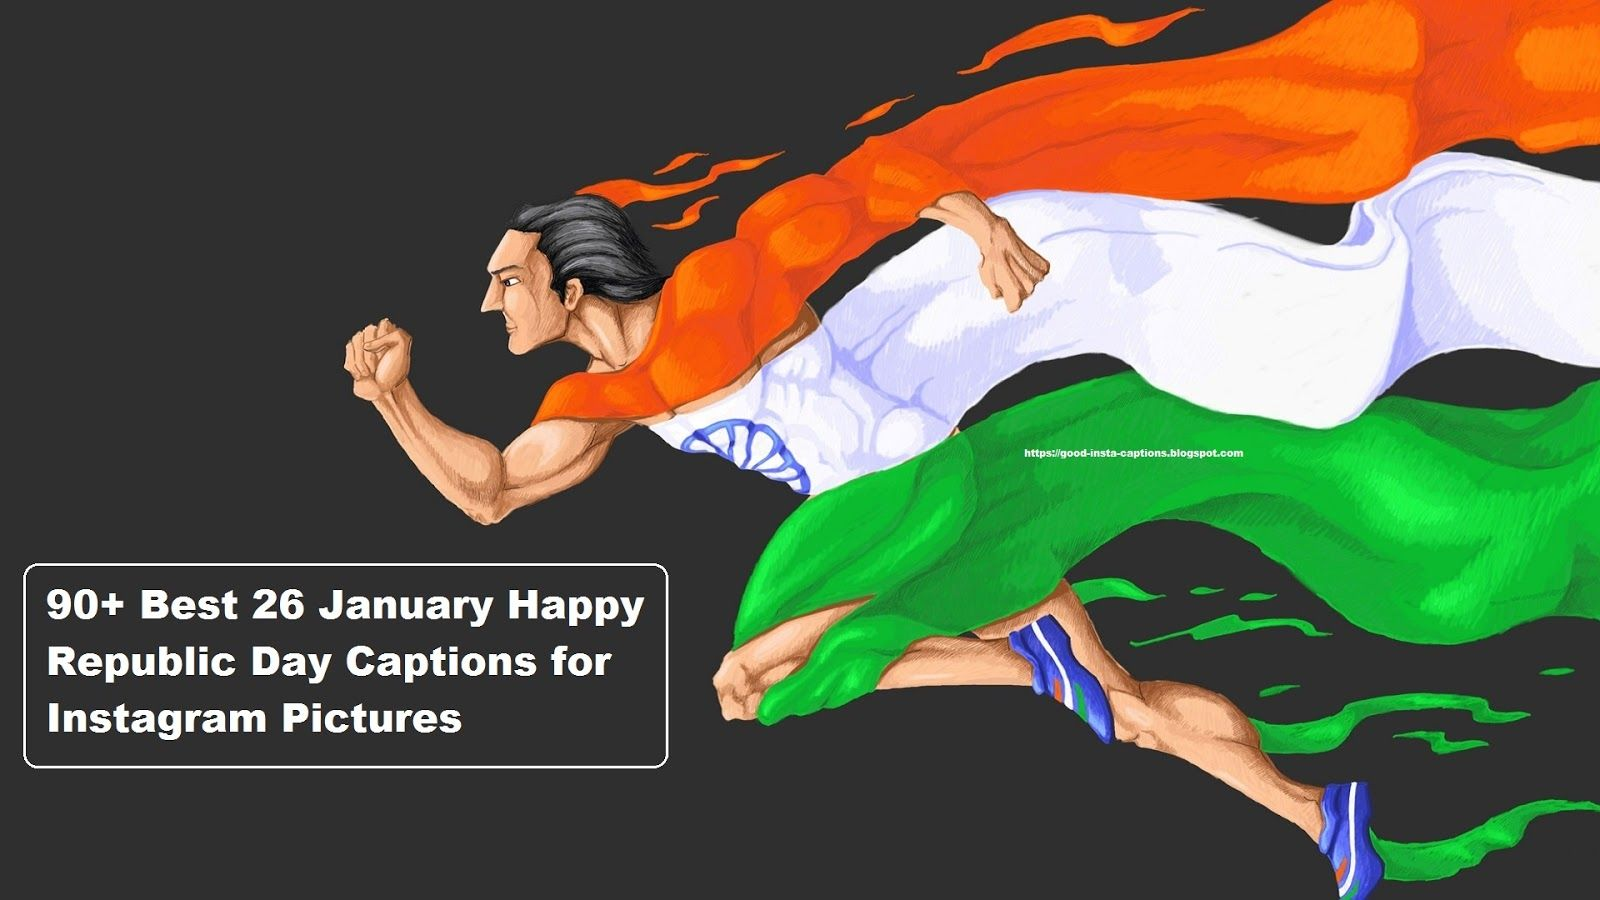 90 Best 26 January Happy Republic Day Captions For Instagram Pictures Republicday Captions Happy Republic Day Republic Day Captions For Instagram Pictures